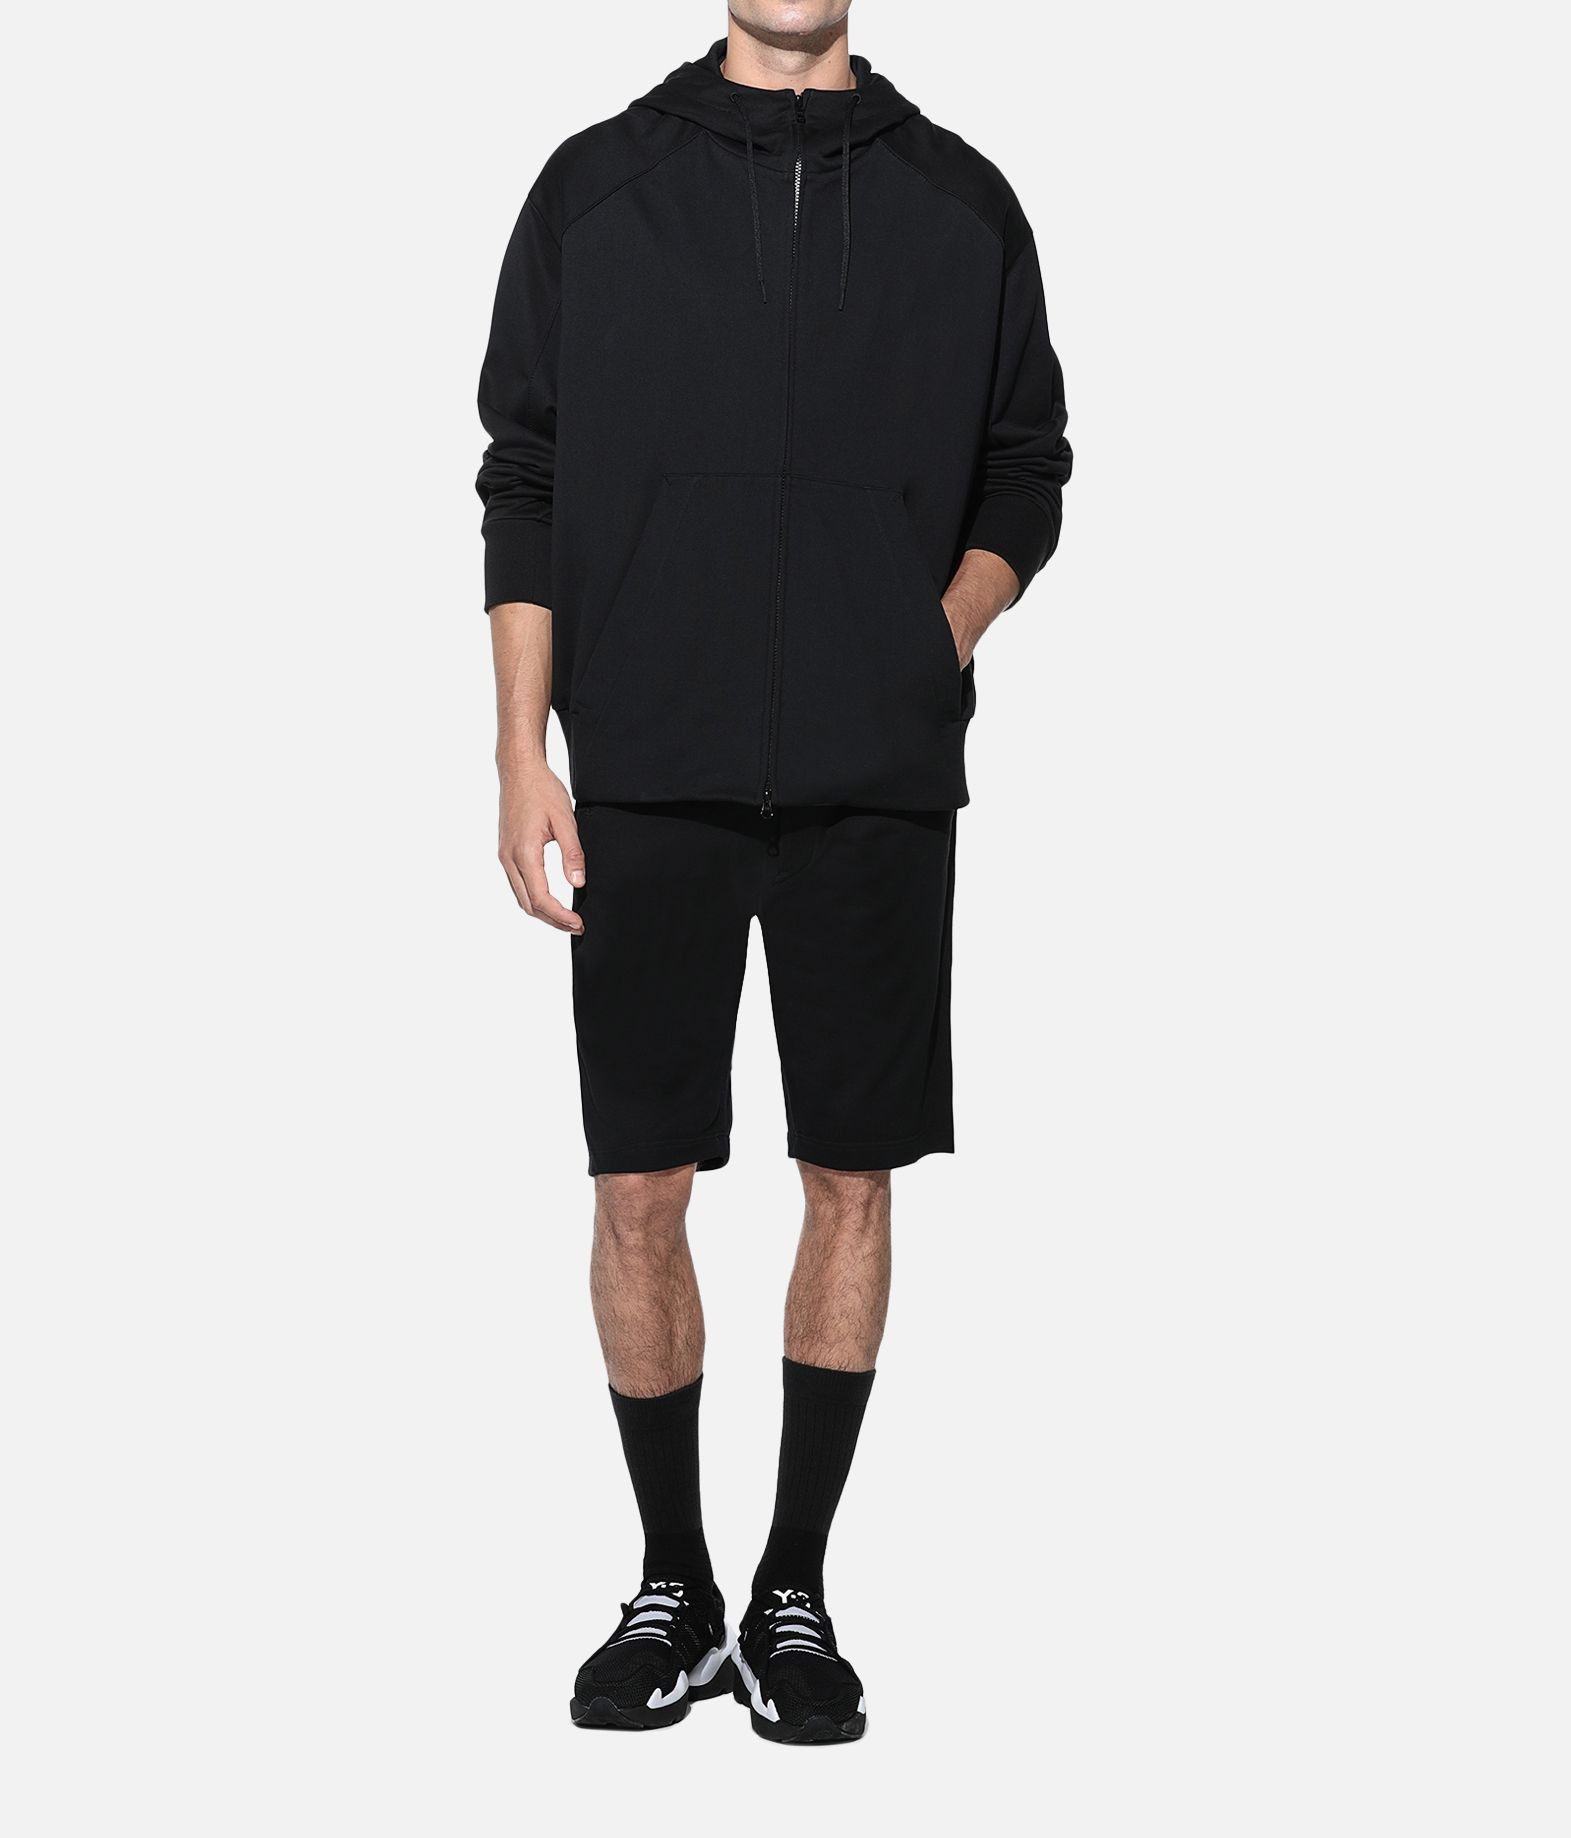 Y-3 Y-3 Signature Graphic Hoodie Hooded sweatshirt Man a